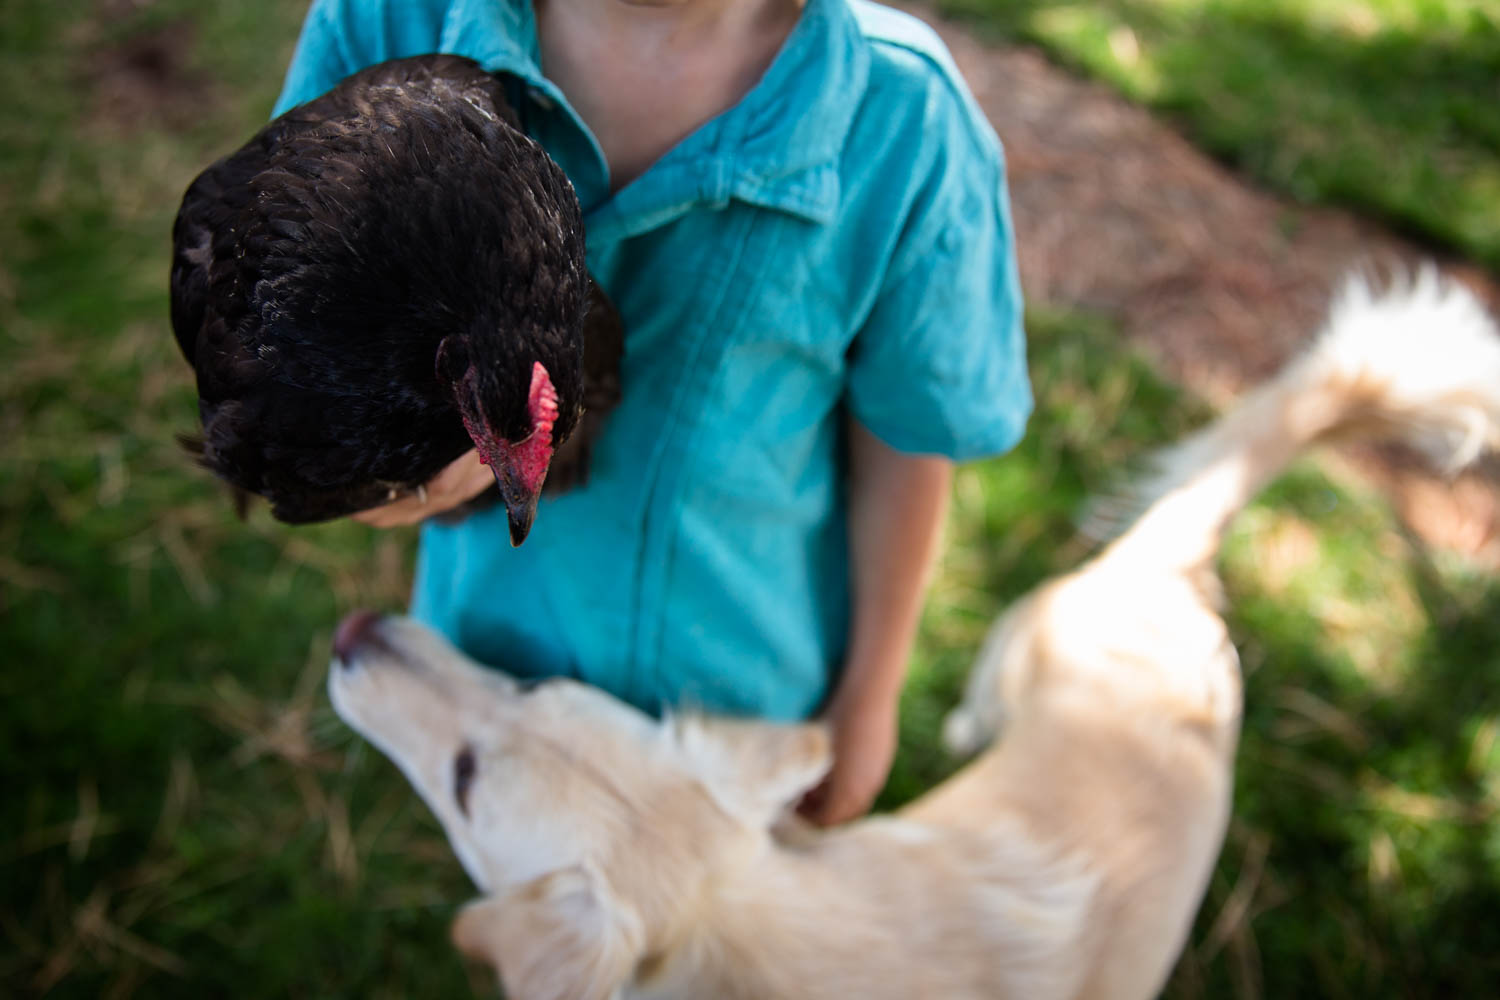 Little boy holding a chicken while dog looks on